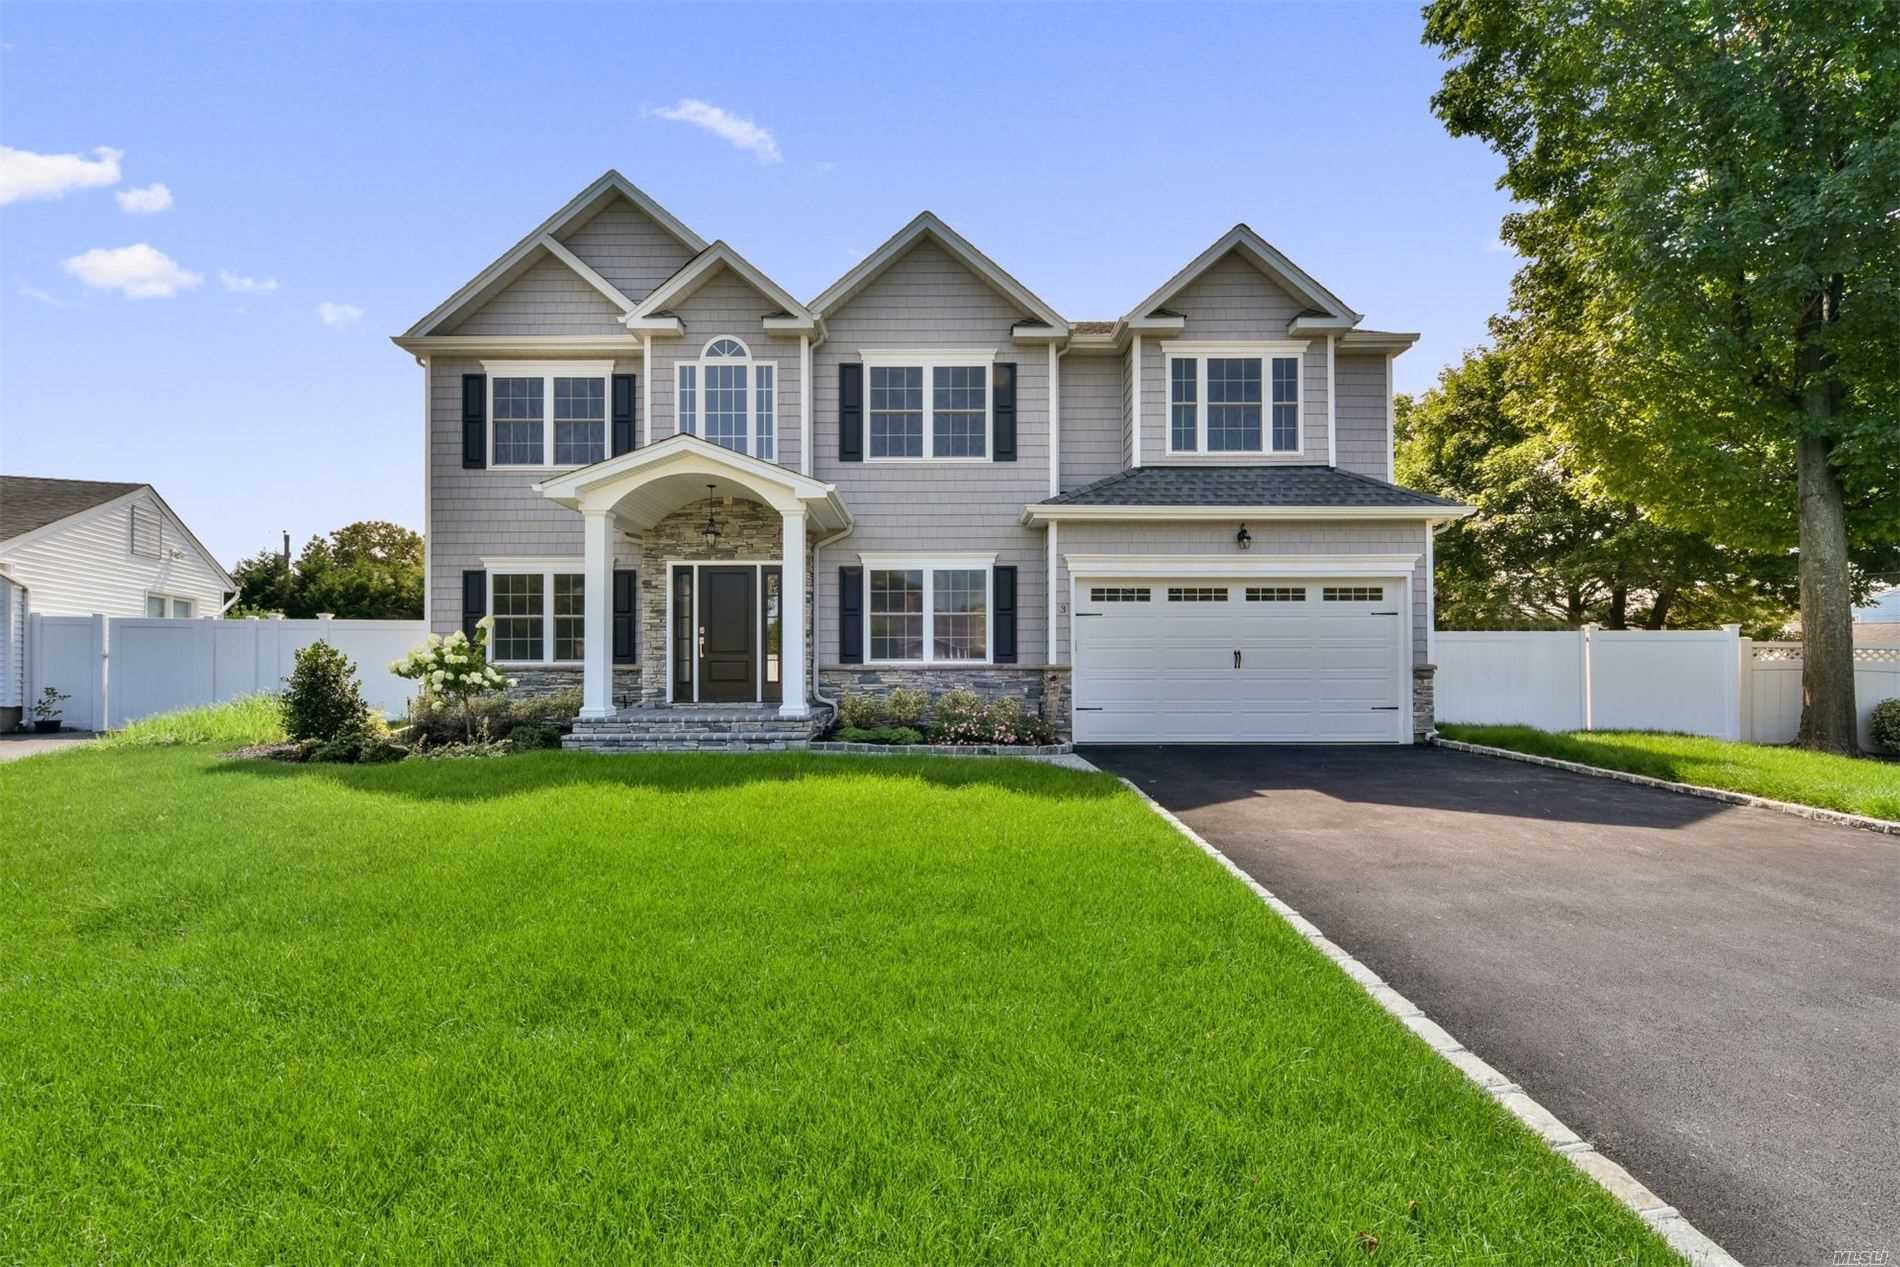 Photo of home for sale at 3 Crocus Dr, Syosset NY